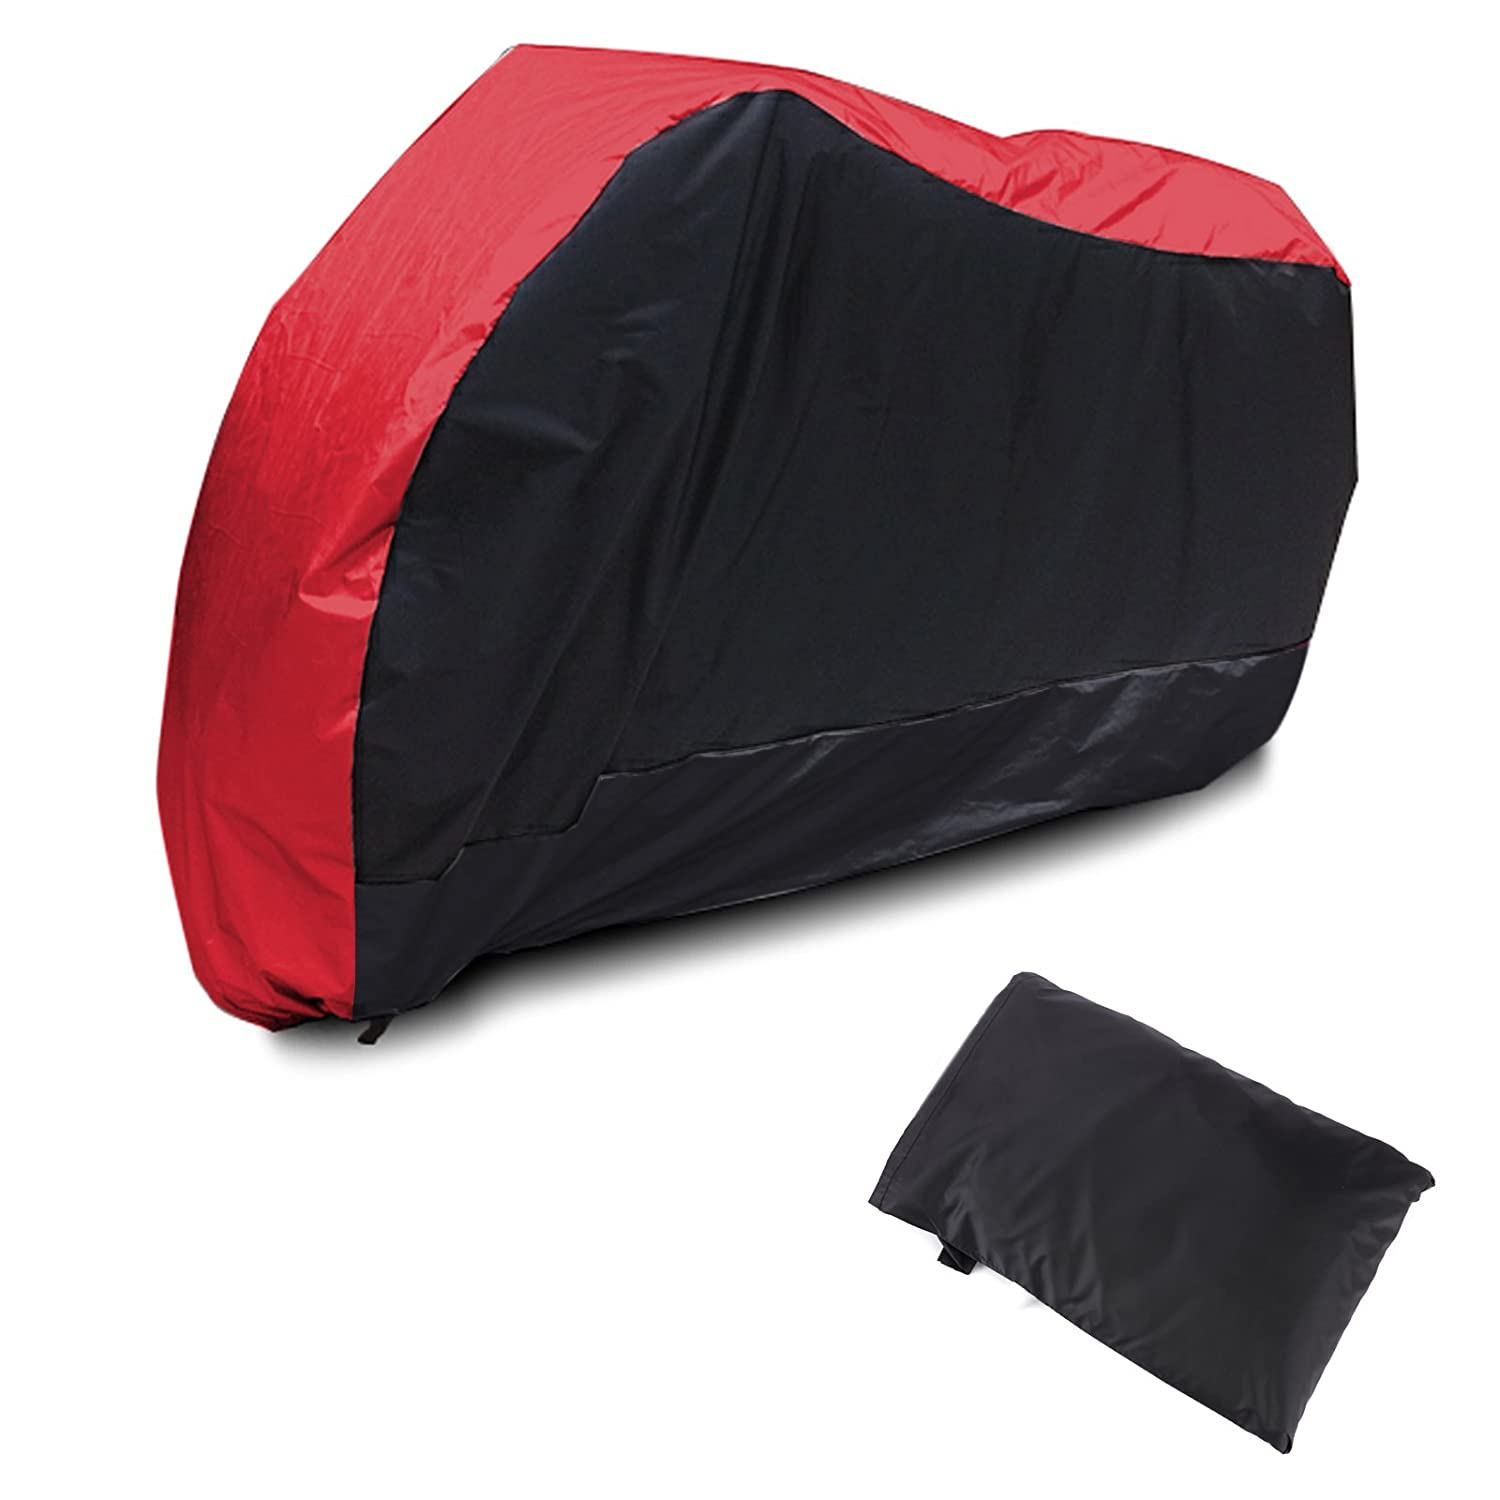 SurePromise Waterproof Motorcycle Cover Motorbike Bike Scooter Breathable Protector with Storage Bag Large Red Black SurePromise Limited